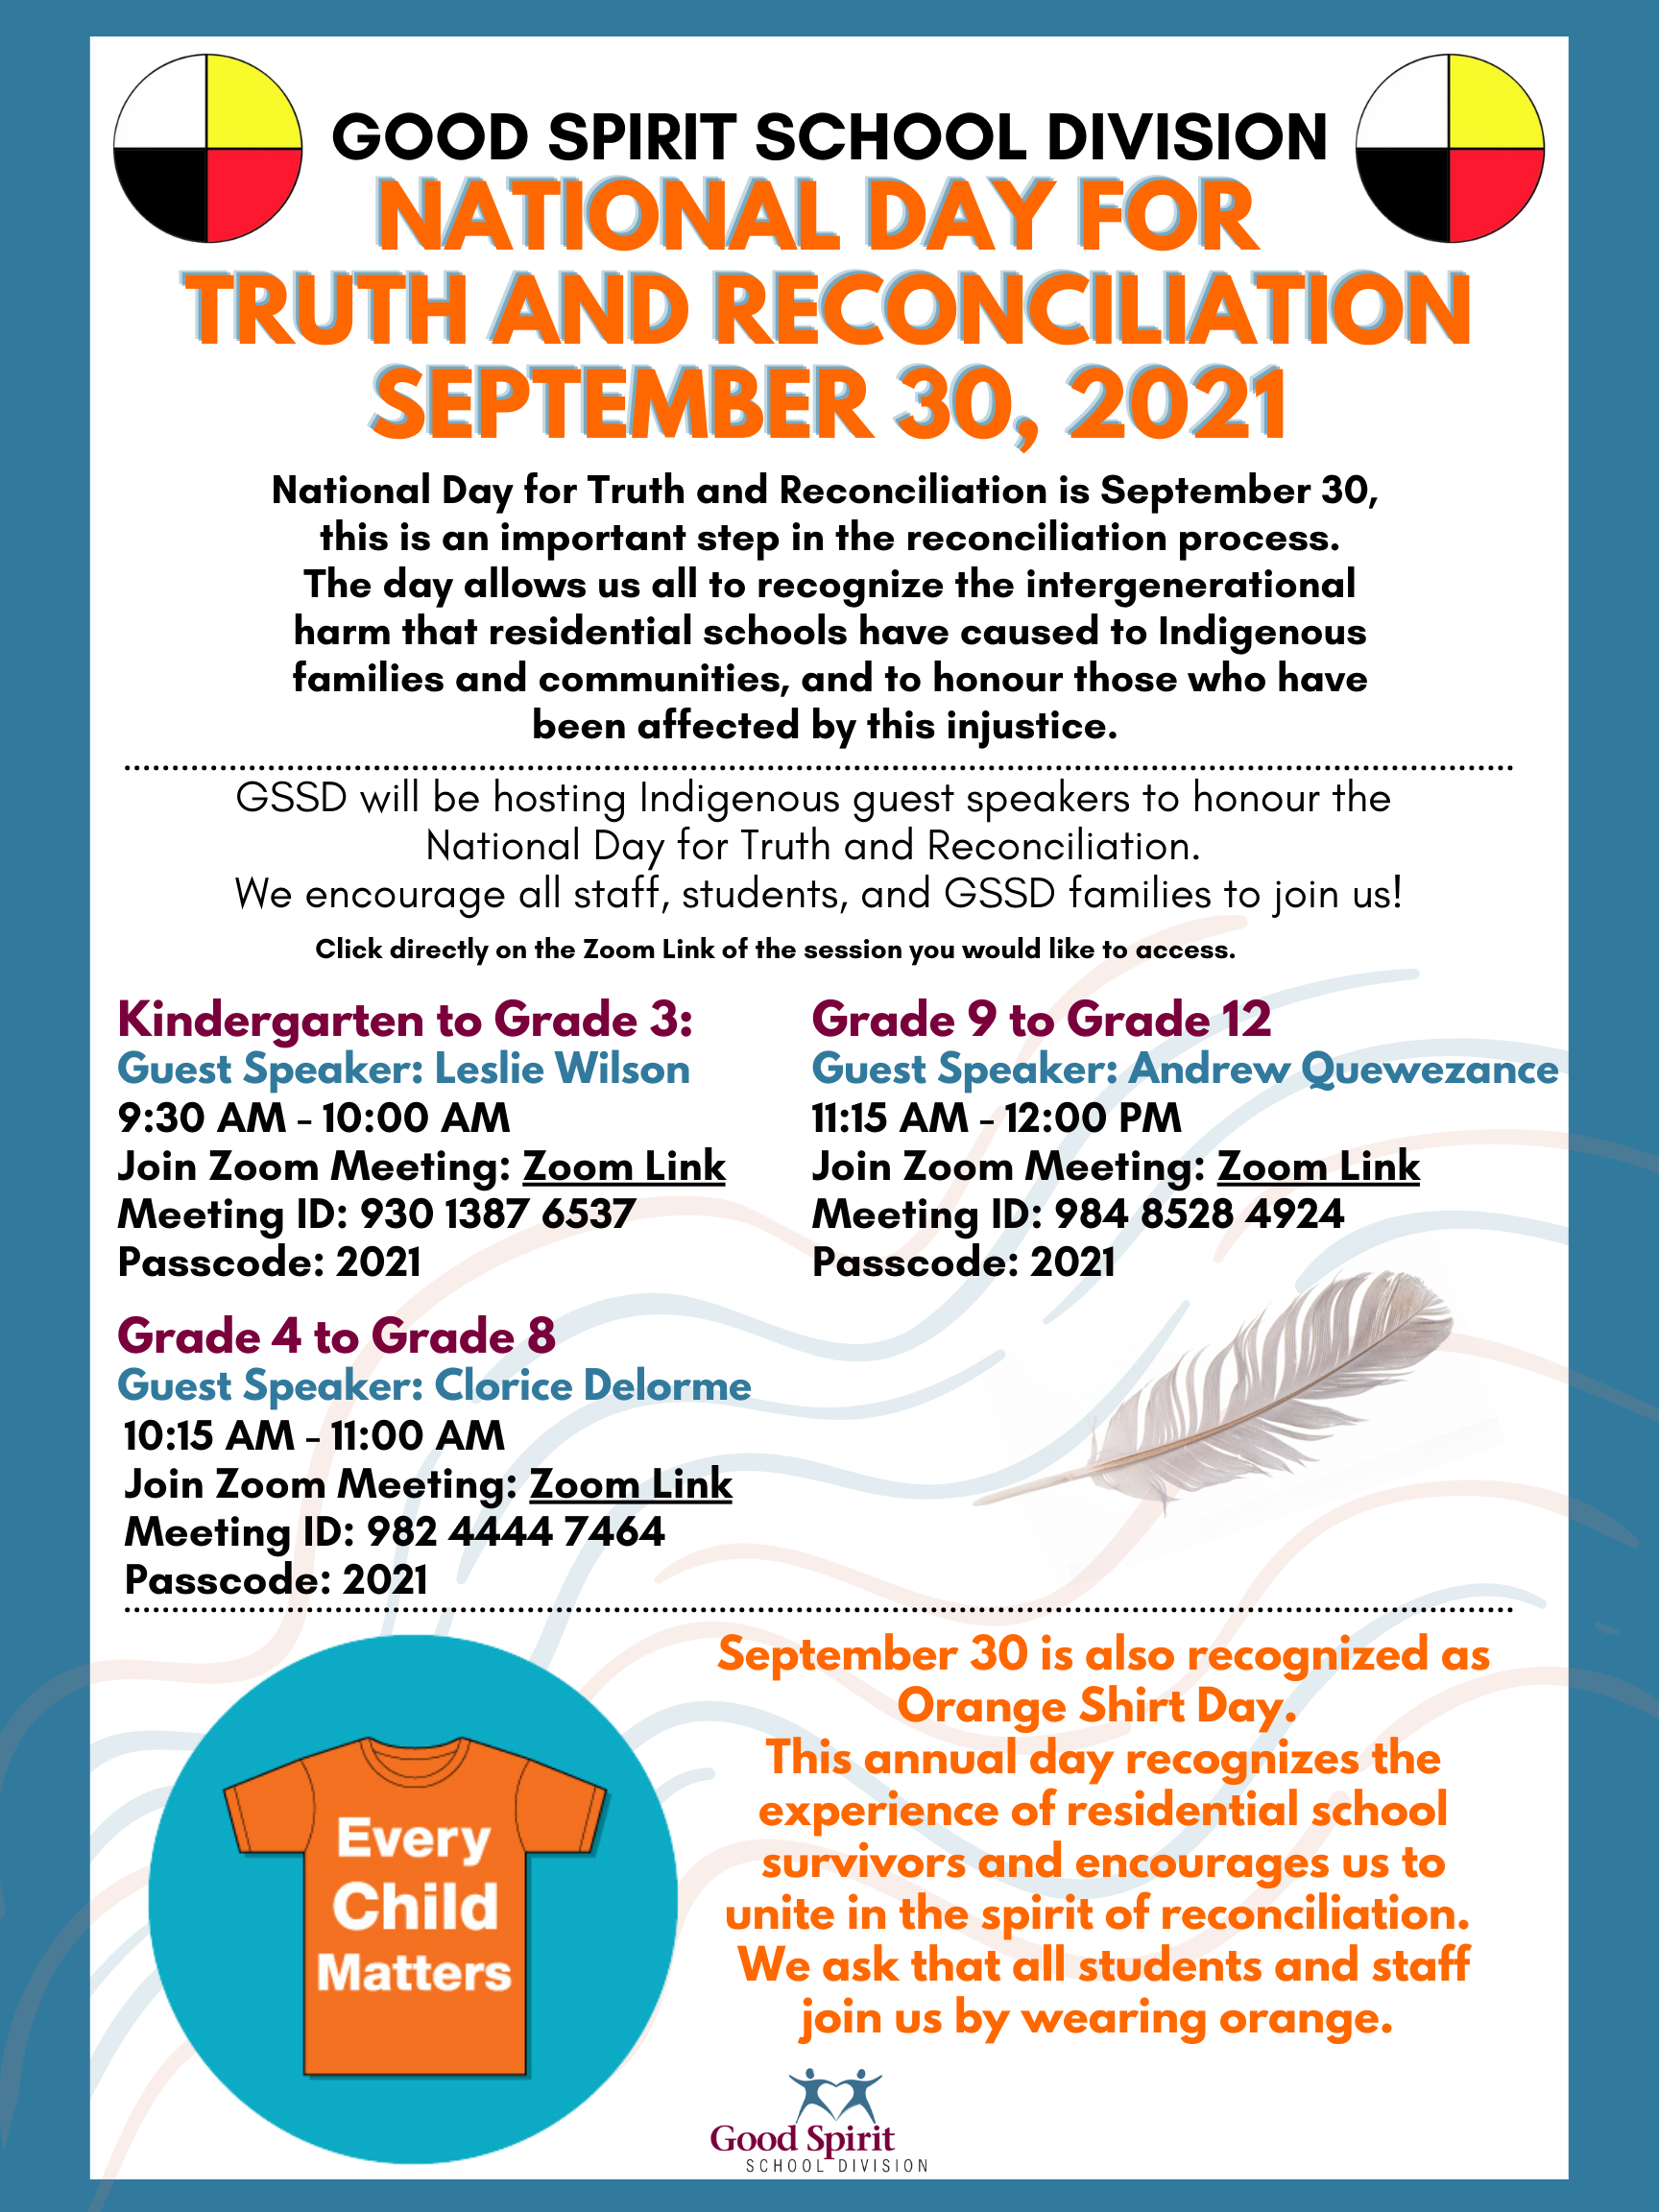 GSSD Sept 30 National Day for Truth and Reconciliation Image.png